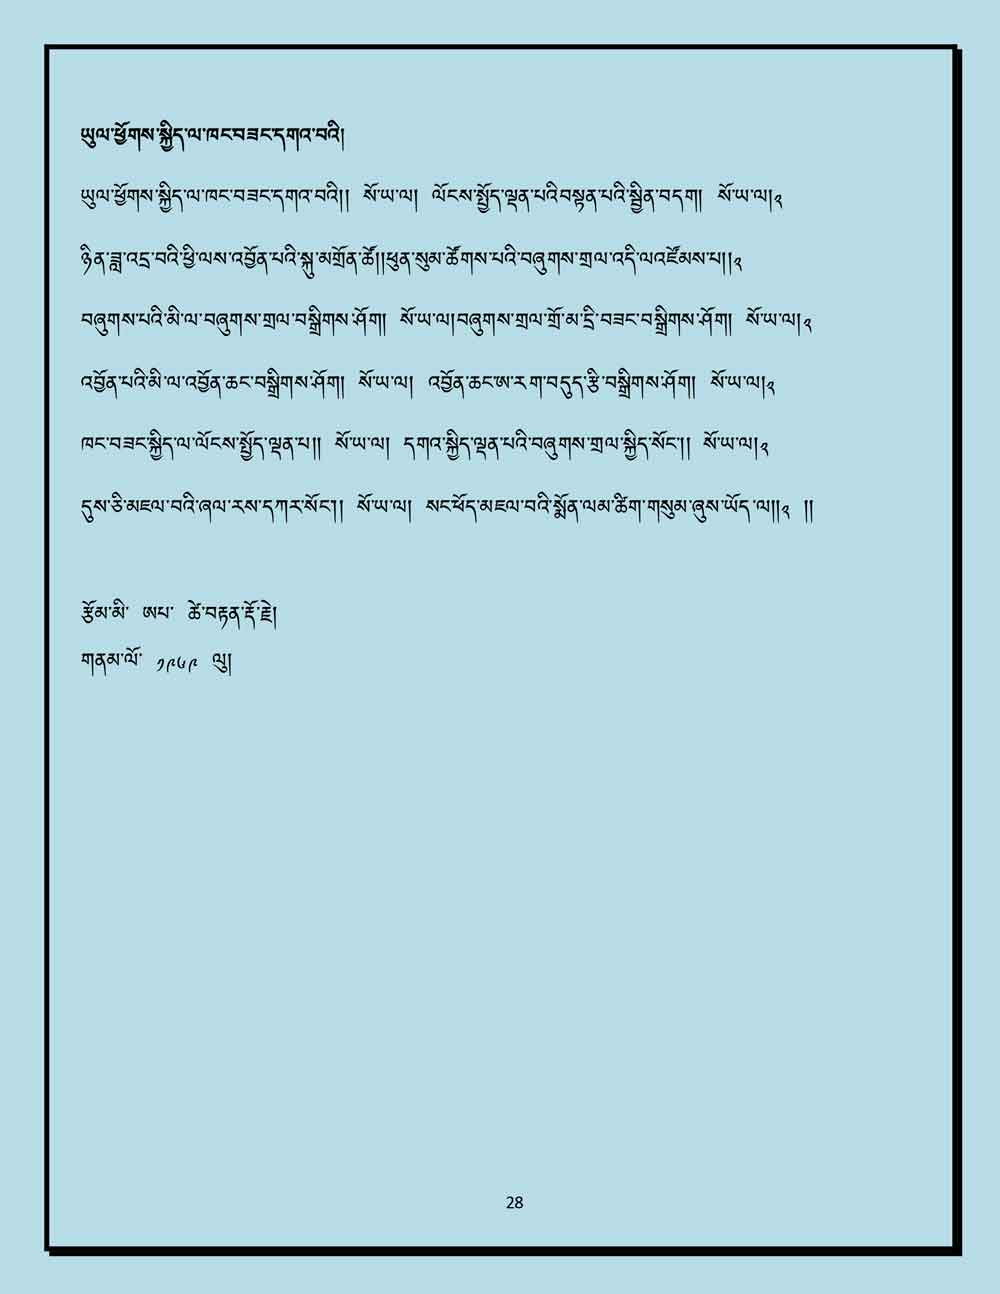 Ap-Tseten-Lyrics-28.jpg